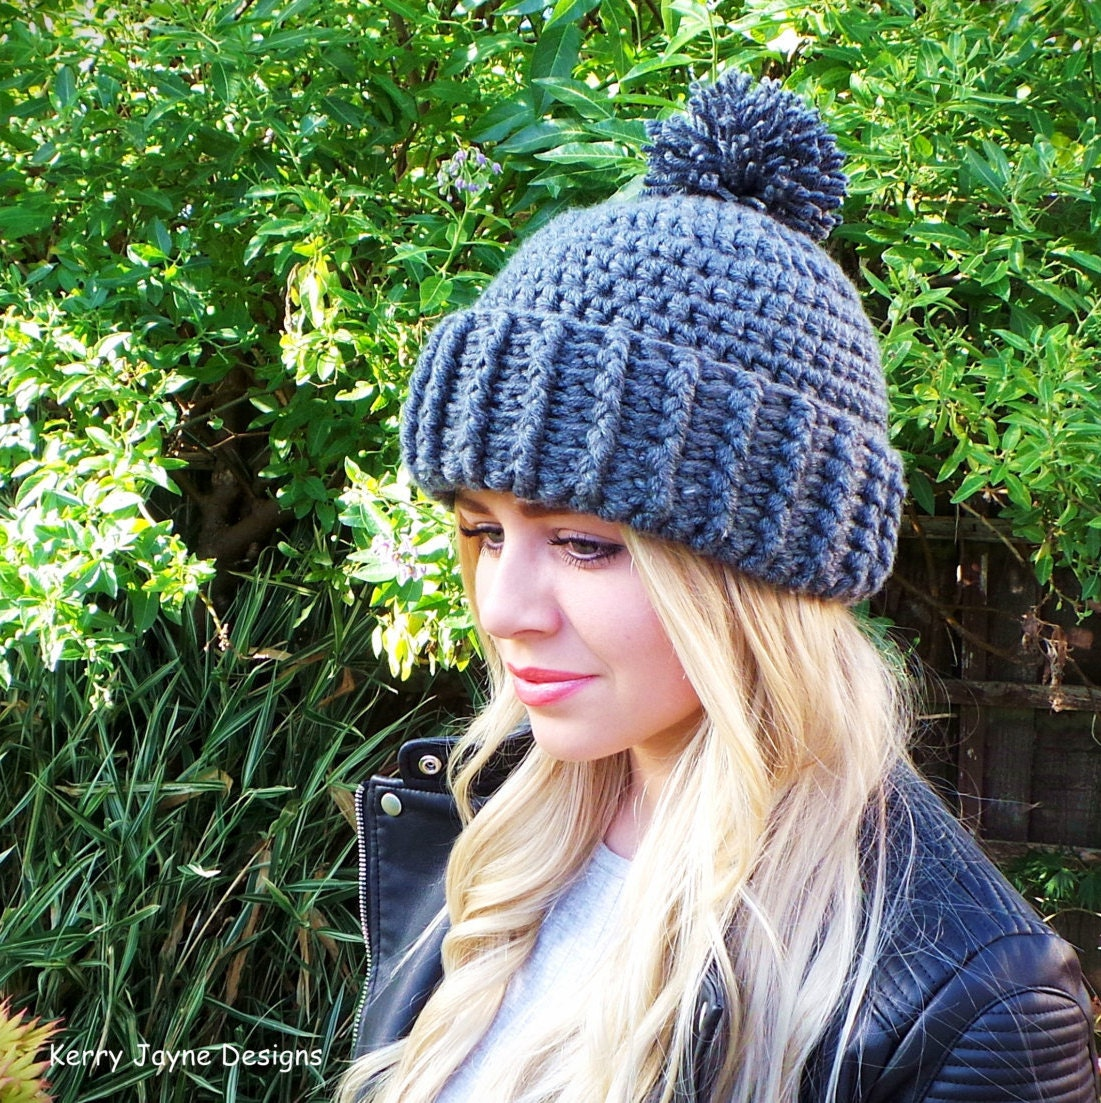 Unisex Crochet Hat Pattern Hard Rock crochet Hat Crochet